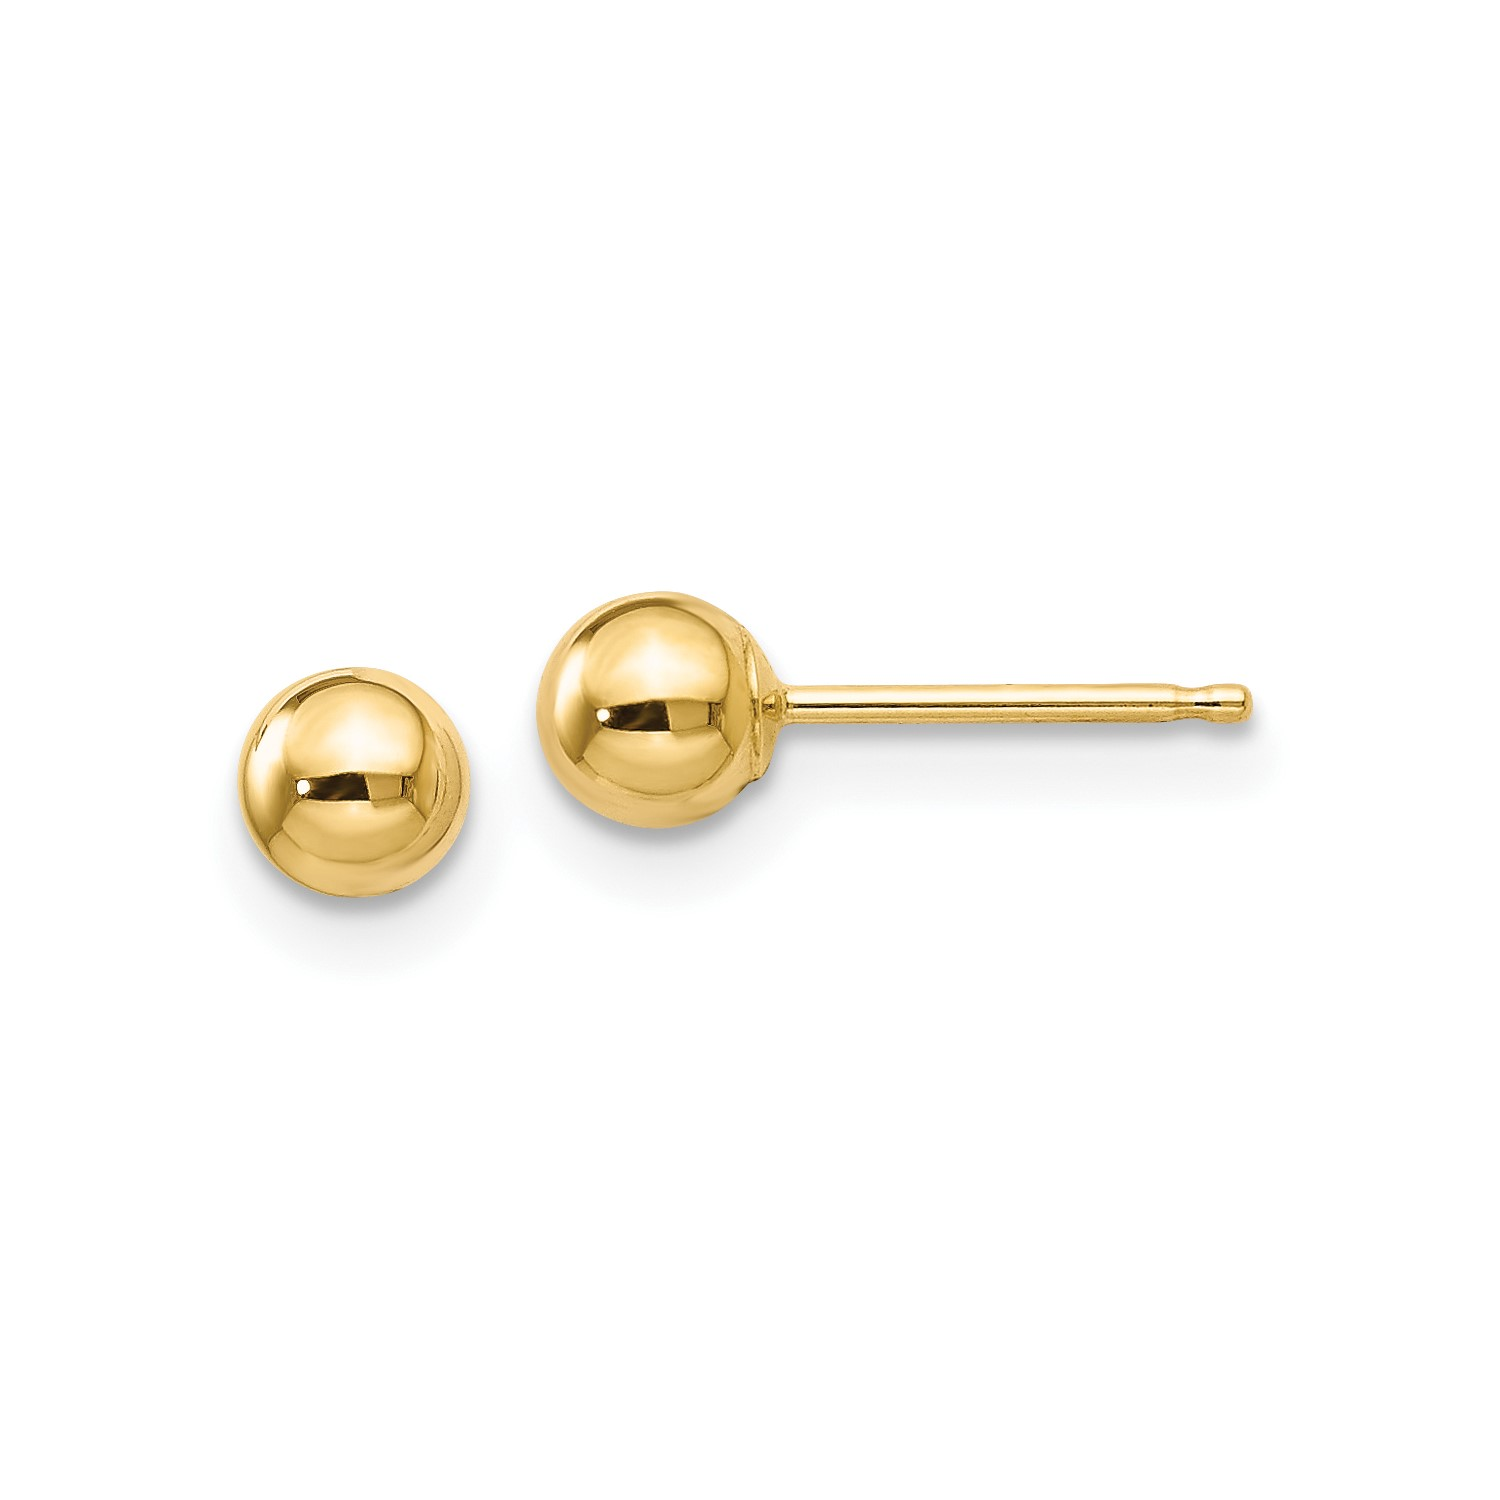 14k Yellow Gold Polished 4mm Ball Post Stud Earrings